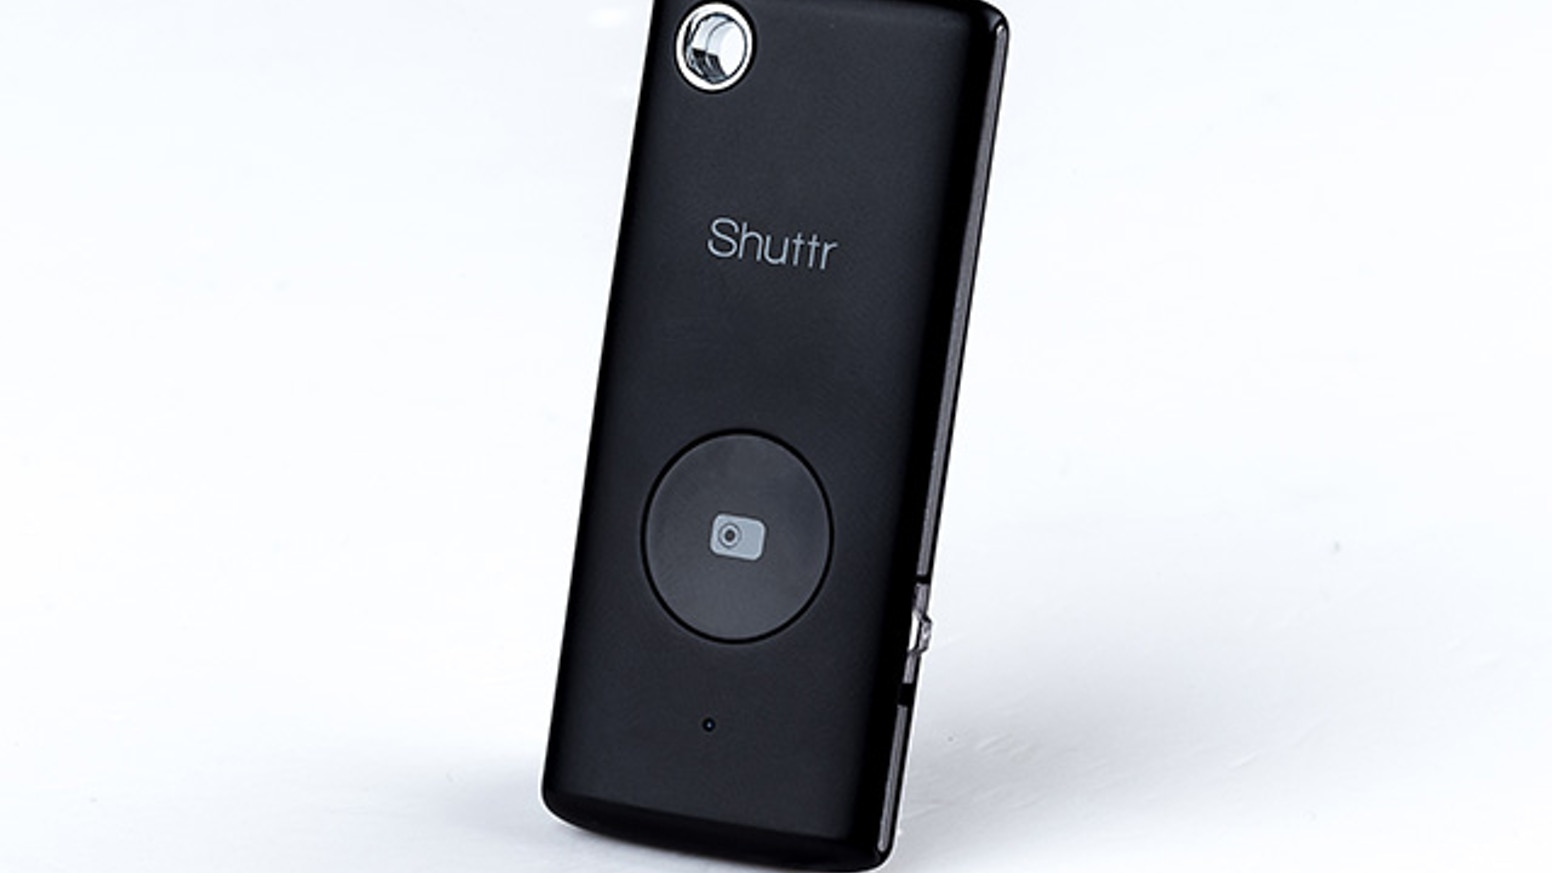 Muku Shuttr - World's Slimmest Remote Camera Control for iPhone, iPad,  Samsung Galaxy S4/S3, Notes 2, LG Nexus 4. No app needed!